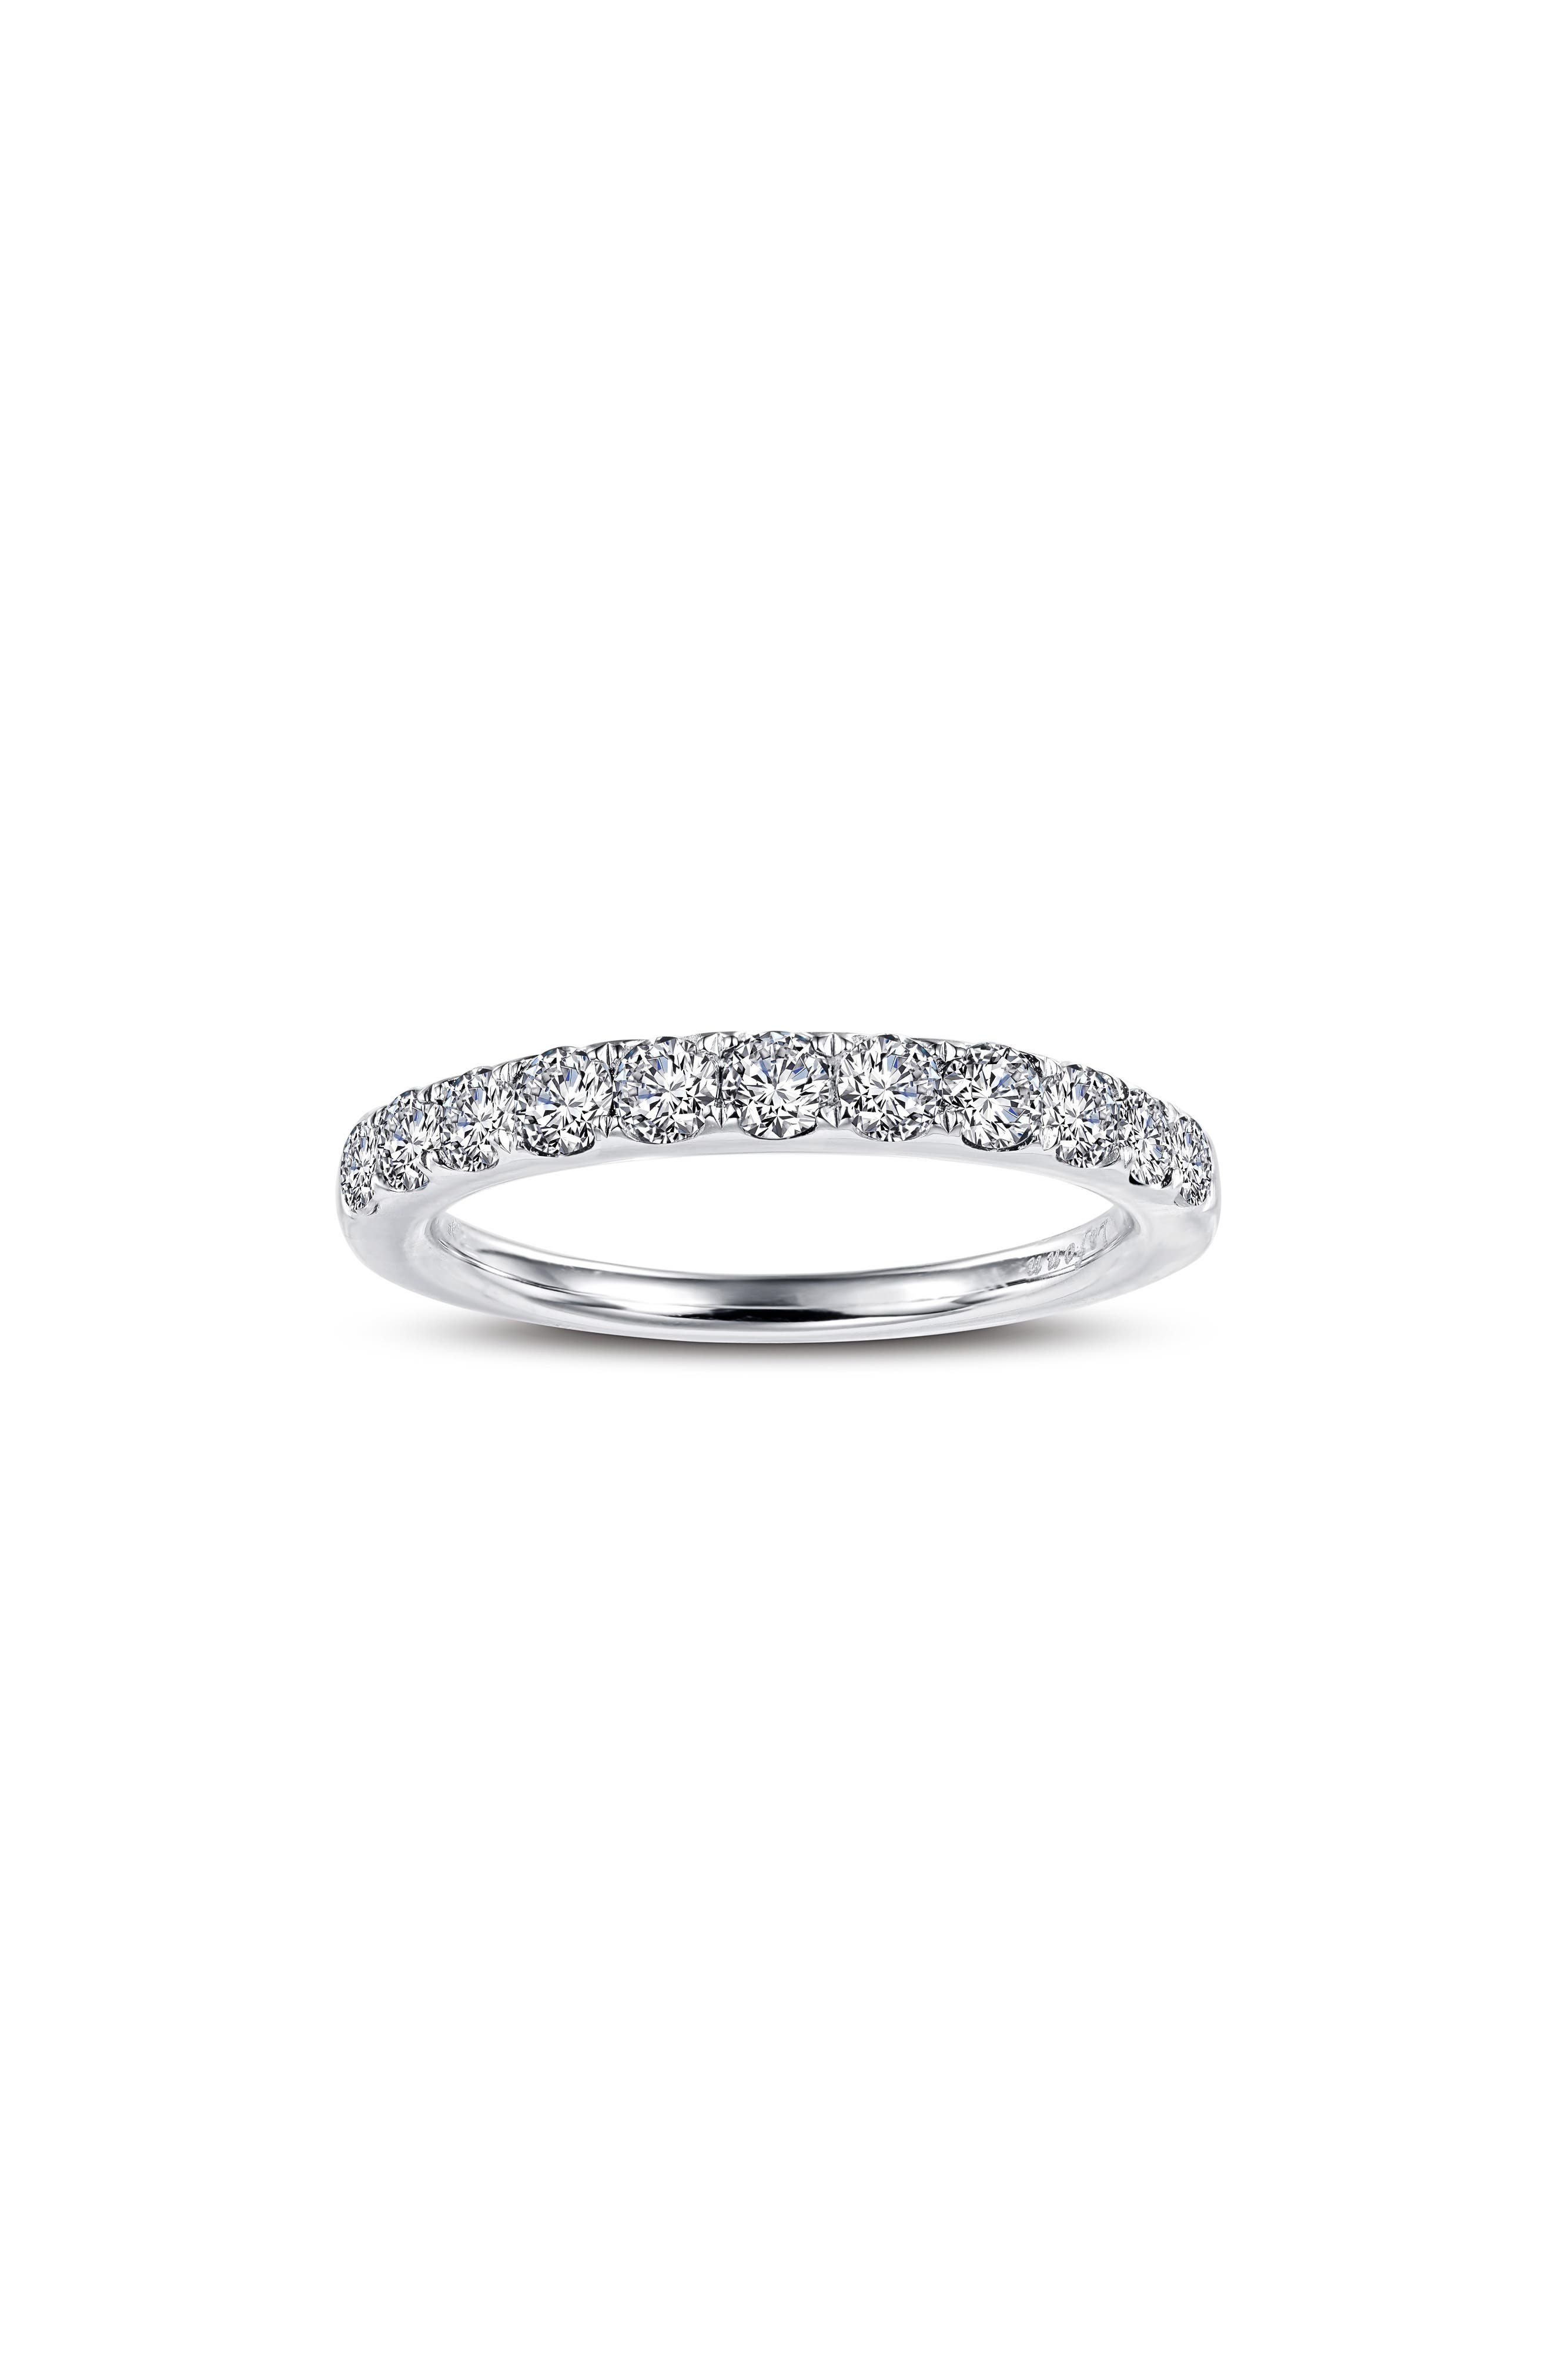 Simulated Diamond Birthstone Band Ring, Main, color, APRIL - CLEAR/ SILVER